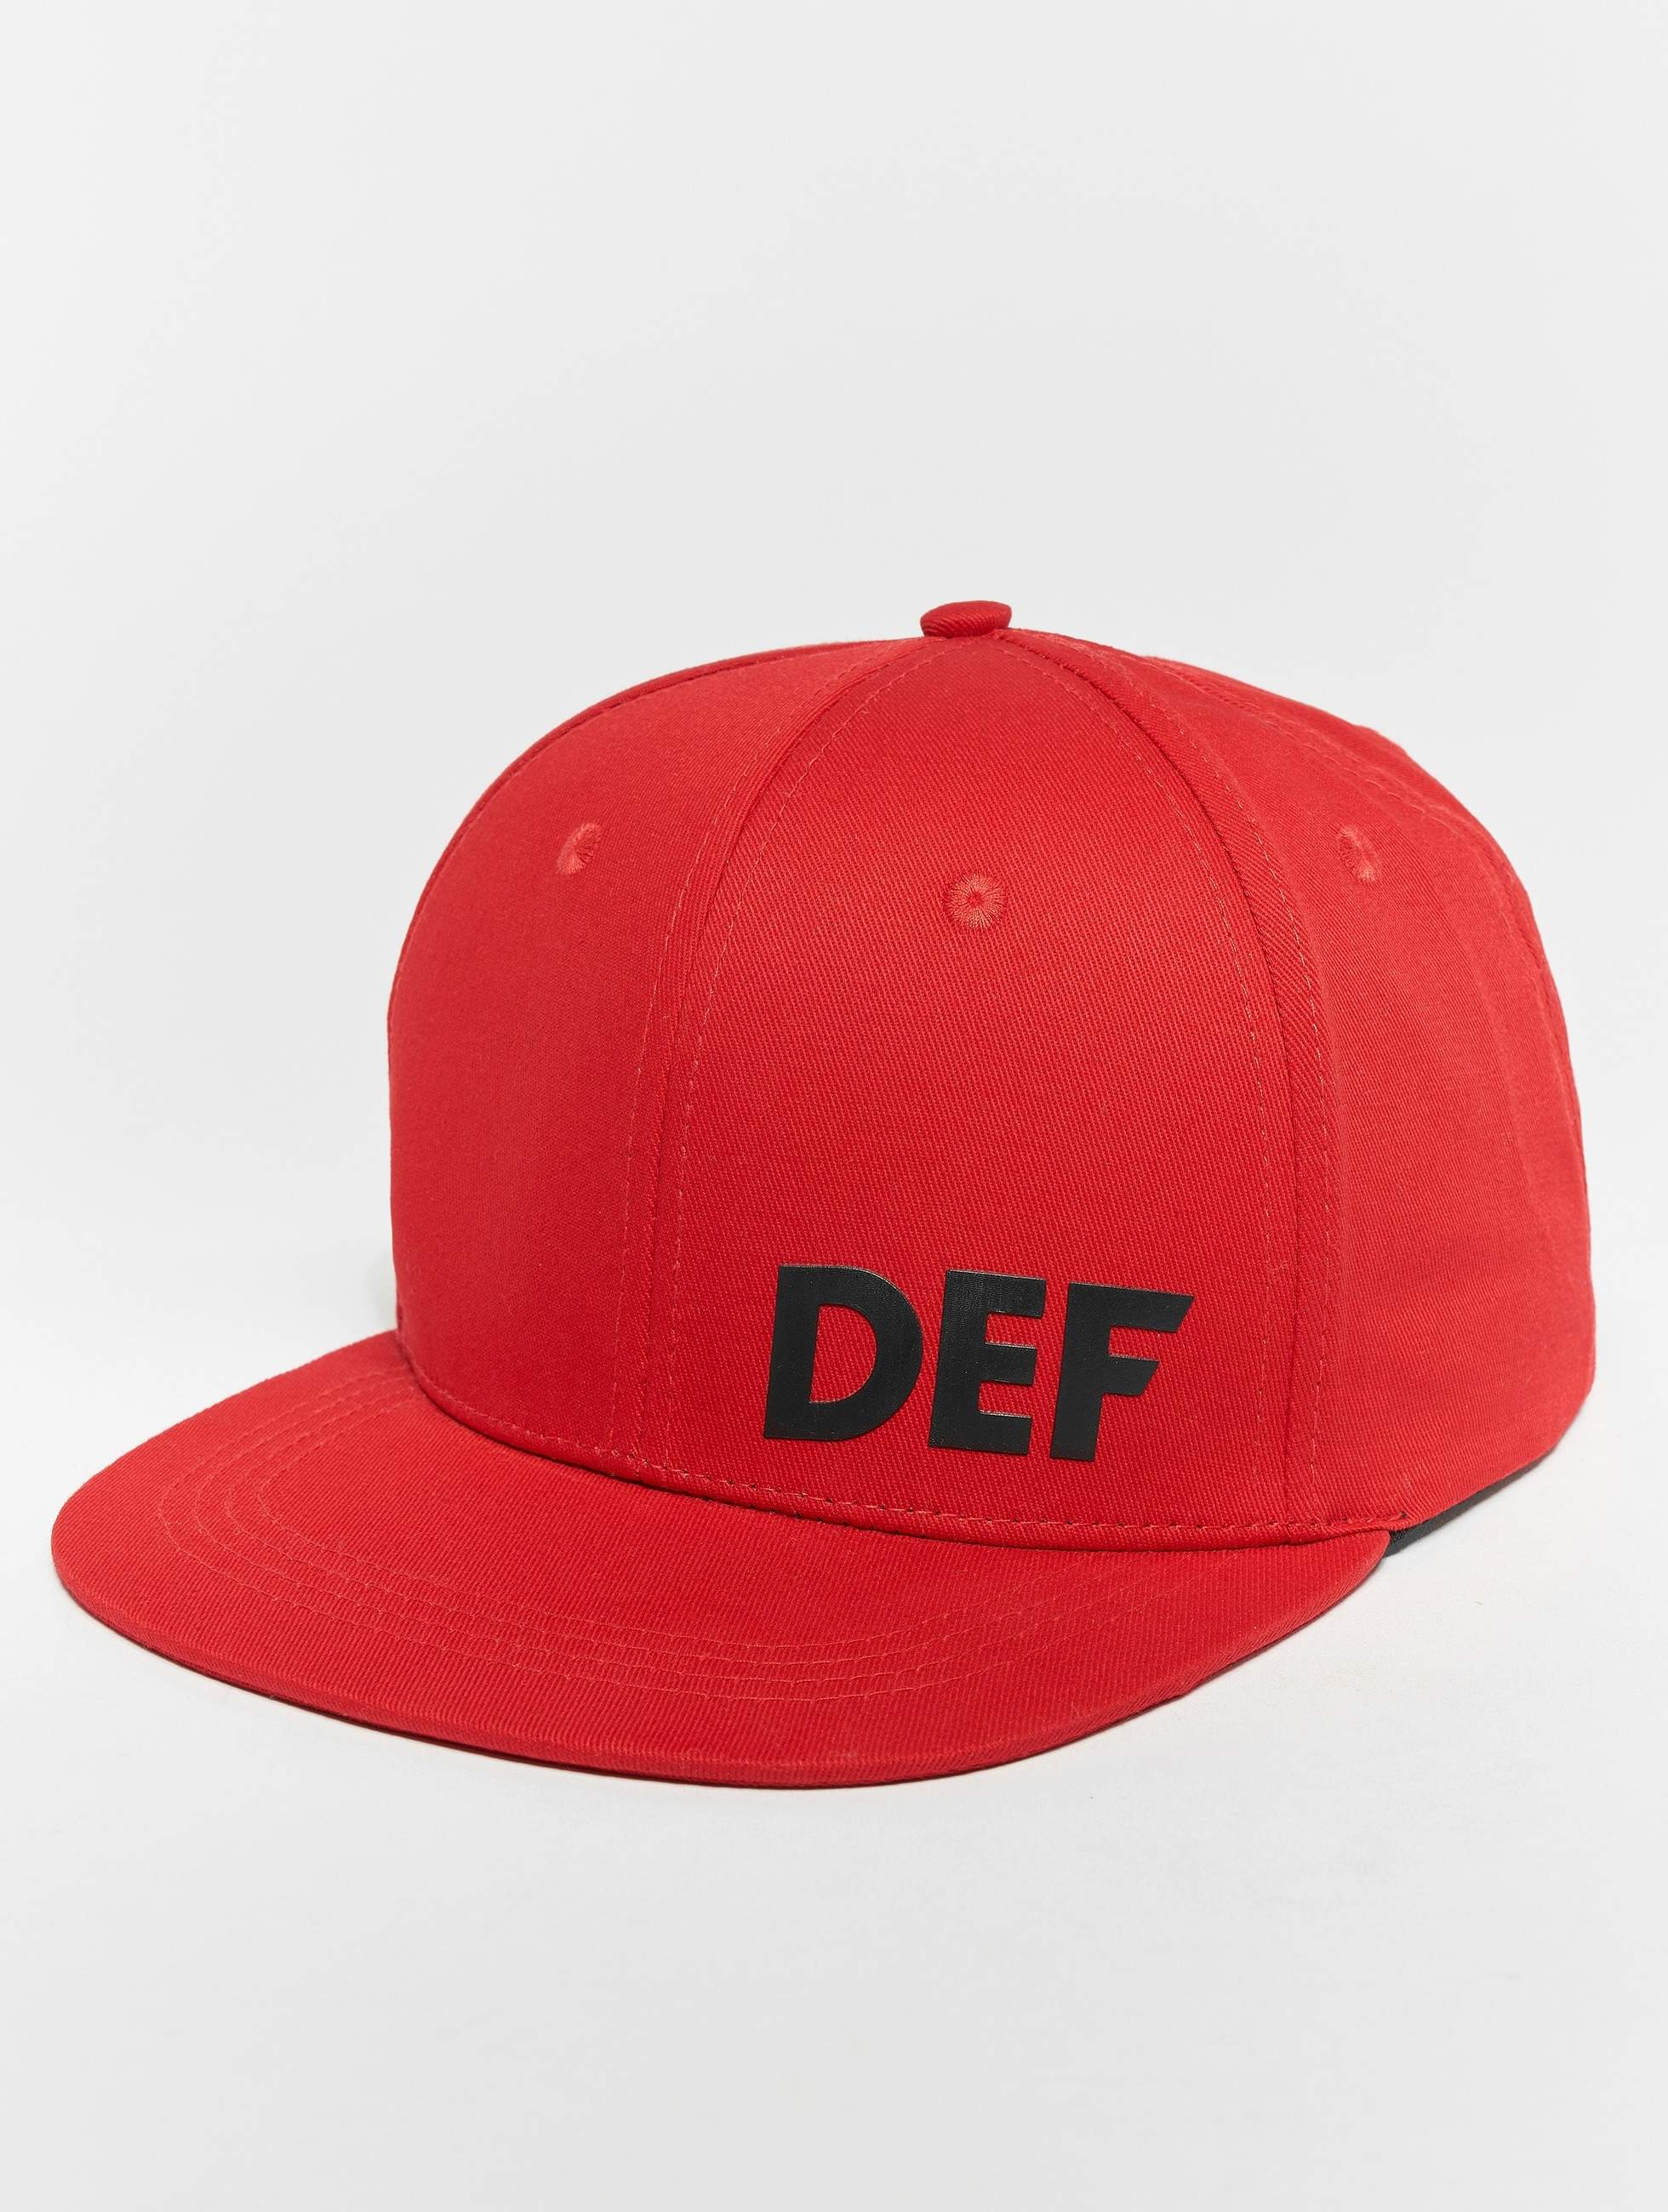 DEF / Snapback Cap Logo in red Adjustable